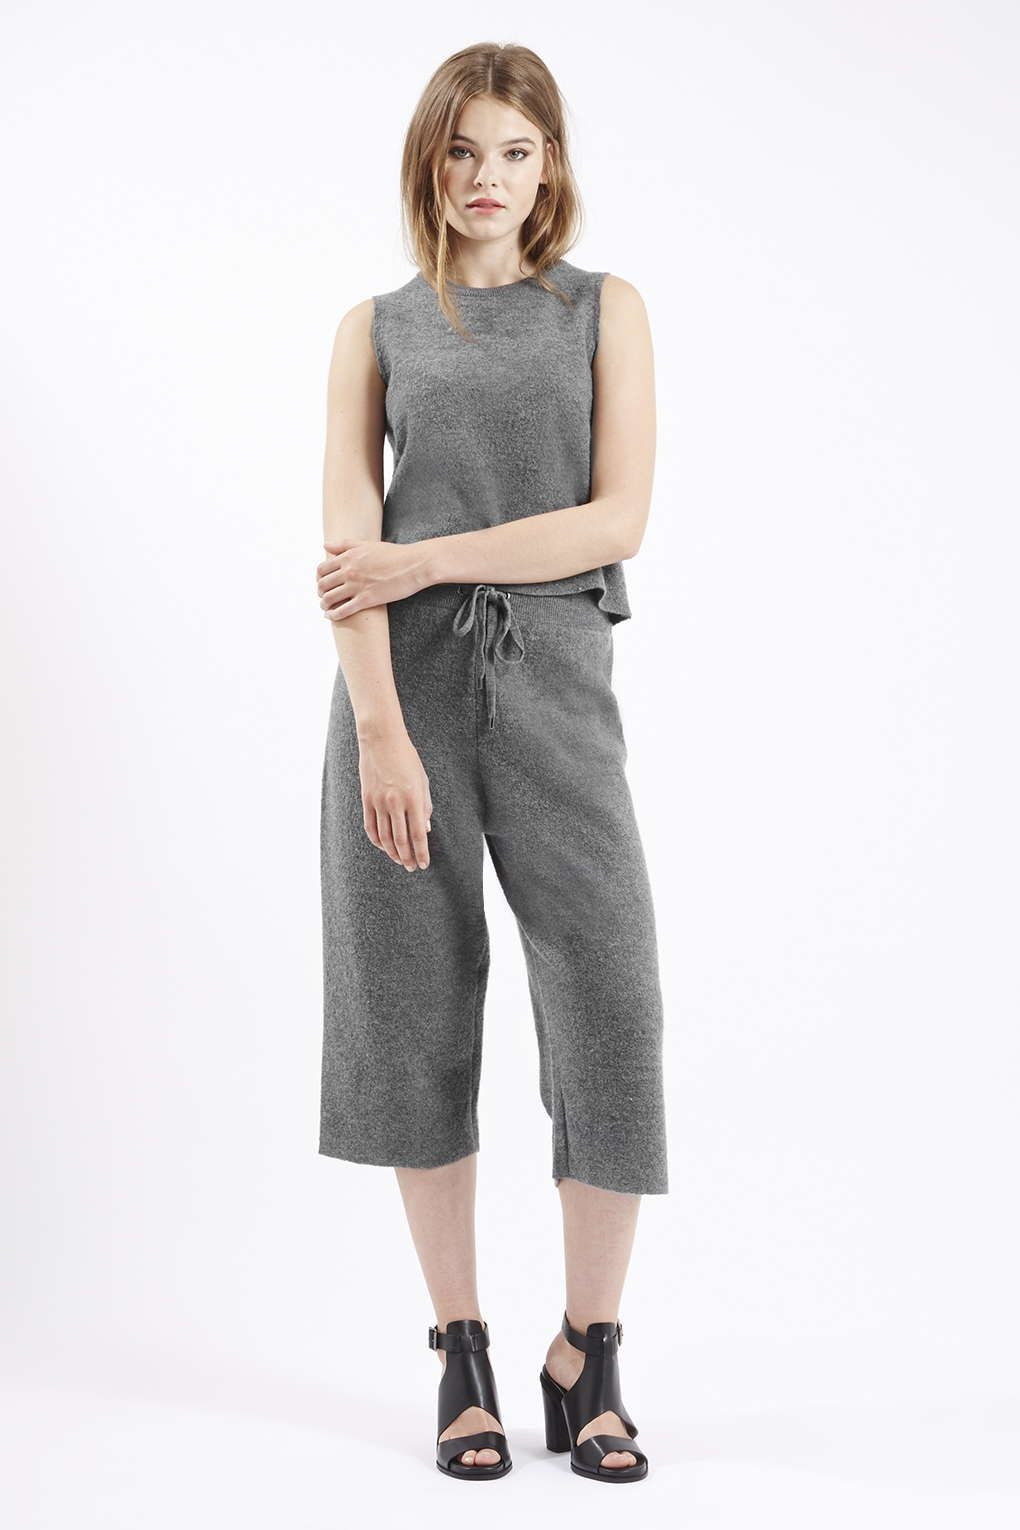 Premium Boiled Wool Tank Top and Culottes